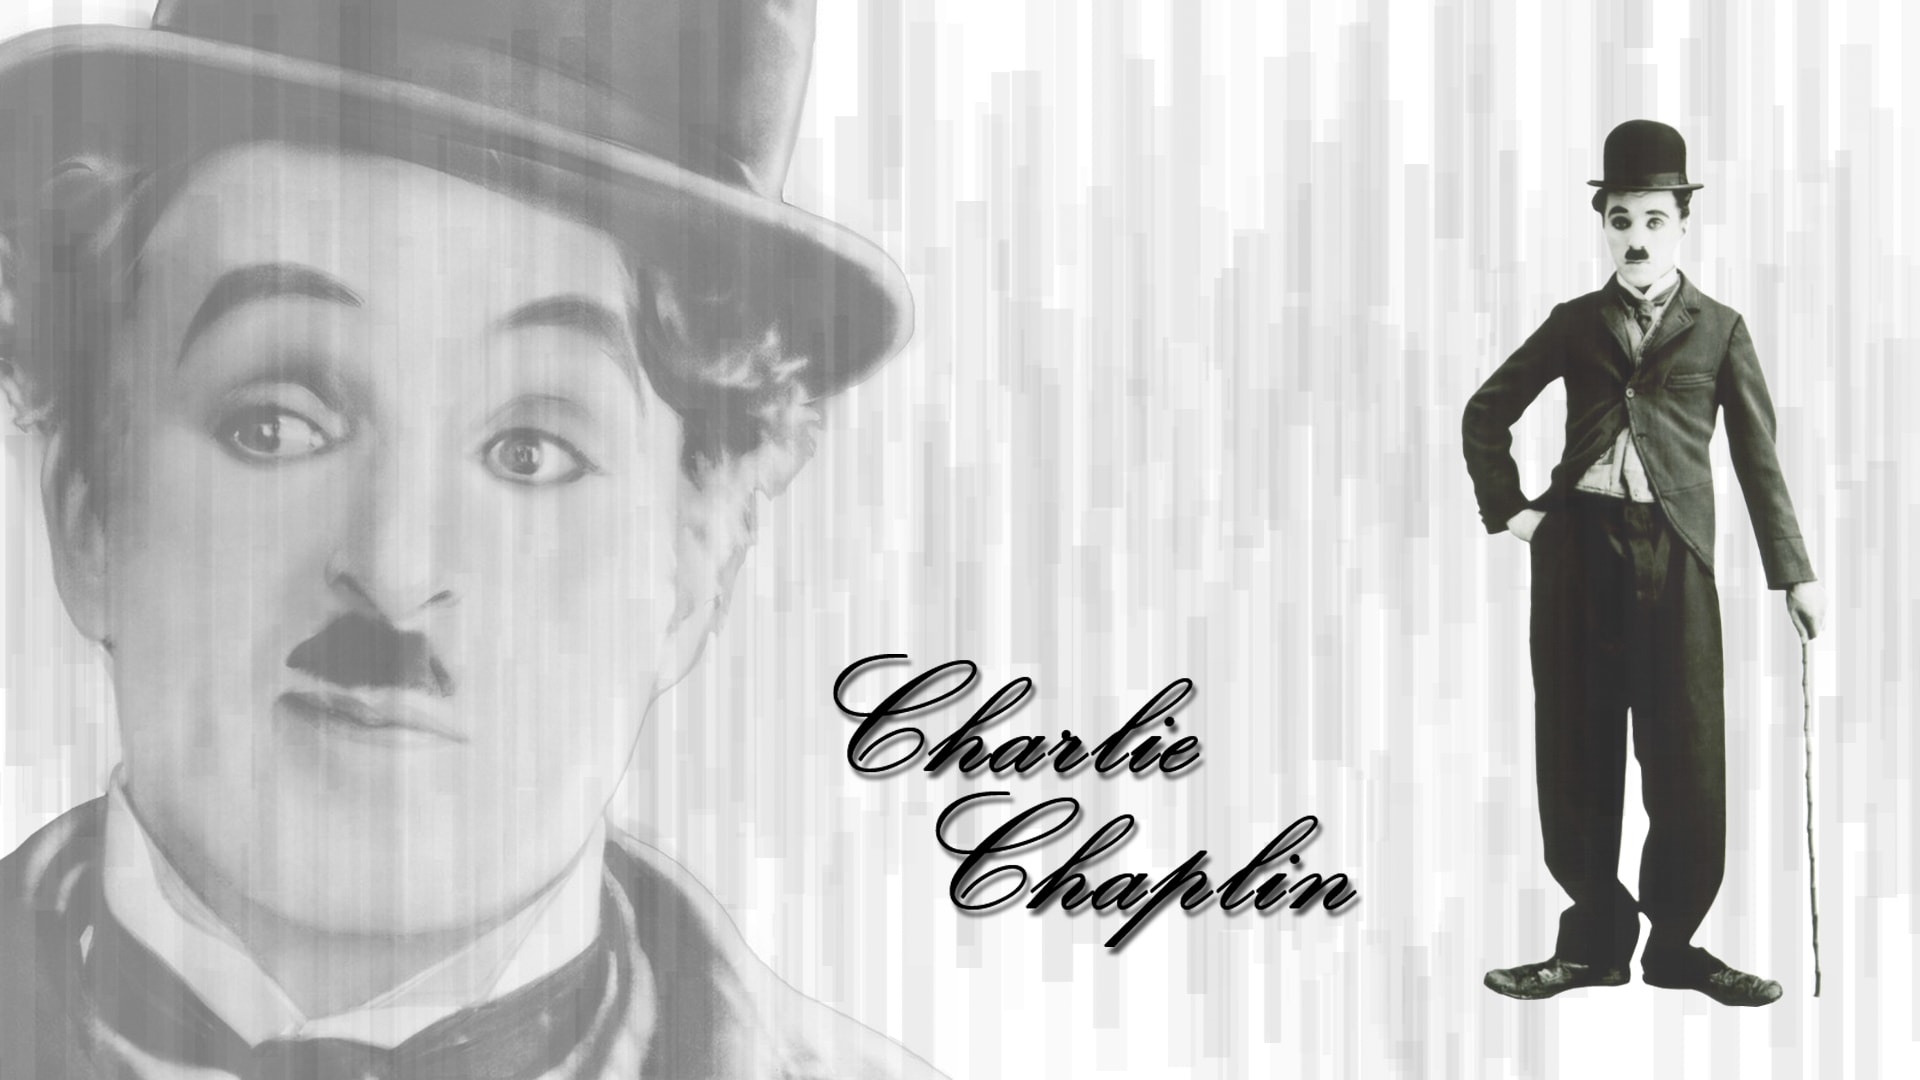 Charles Chaplin Desktop wallpapers